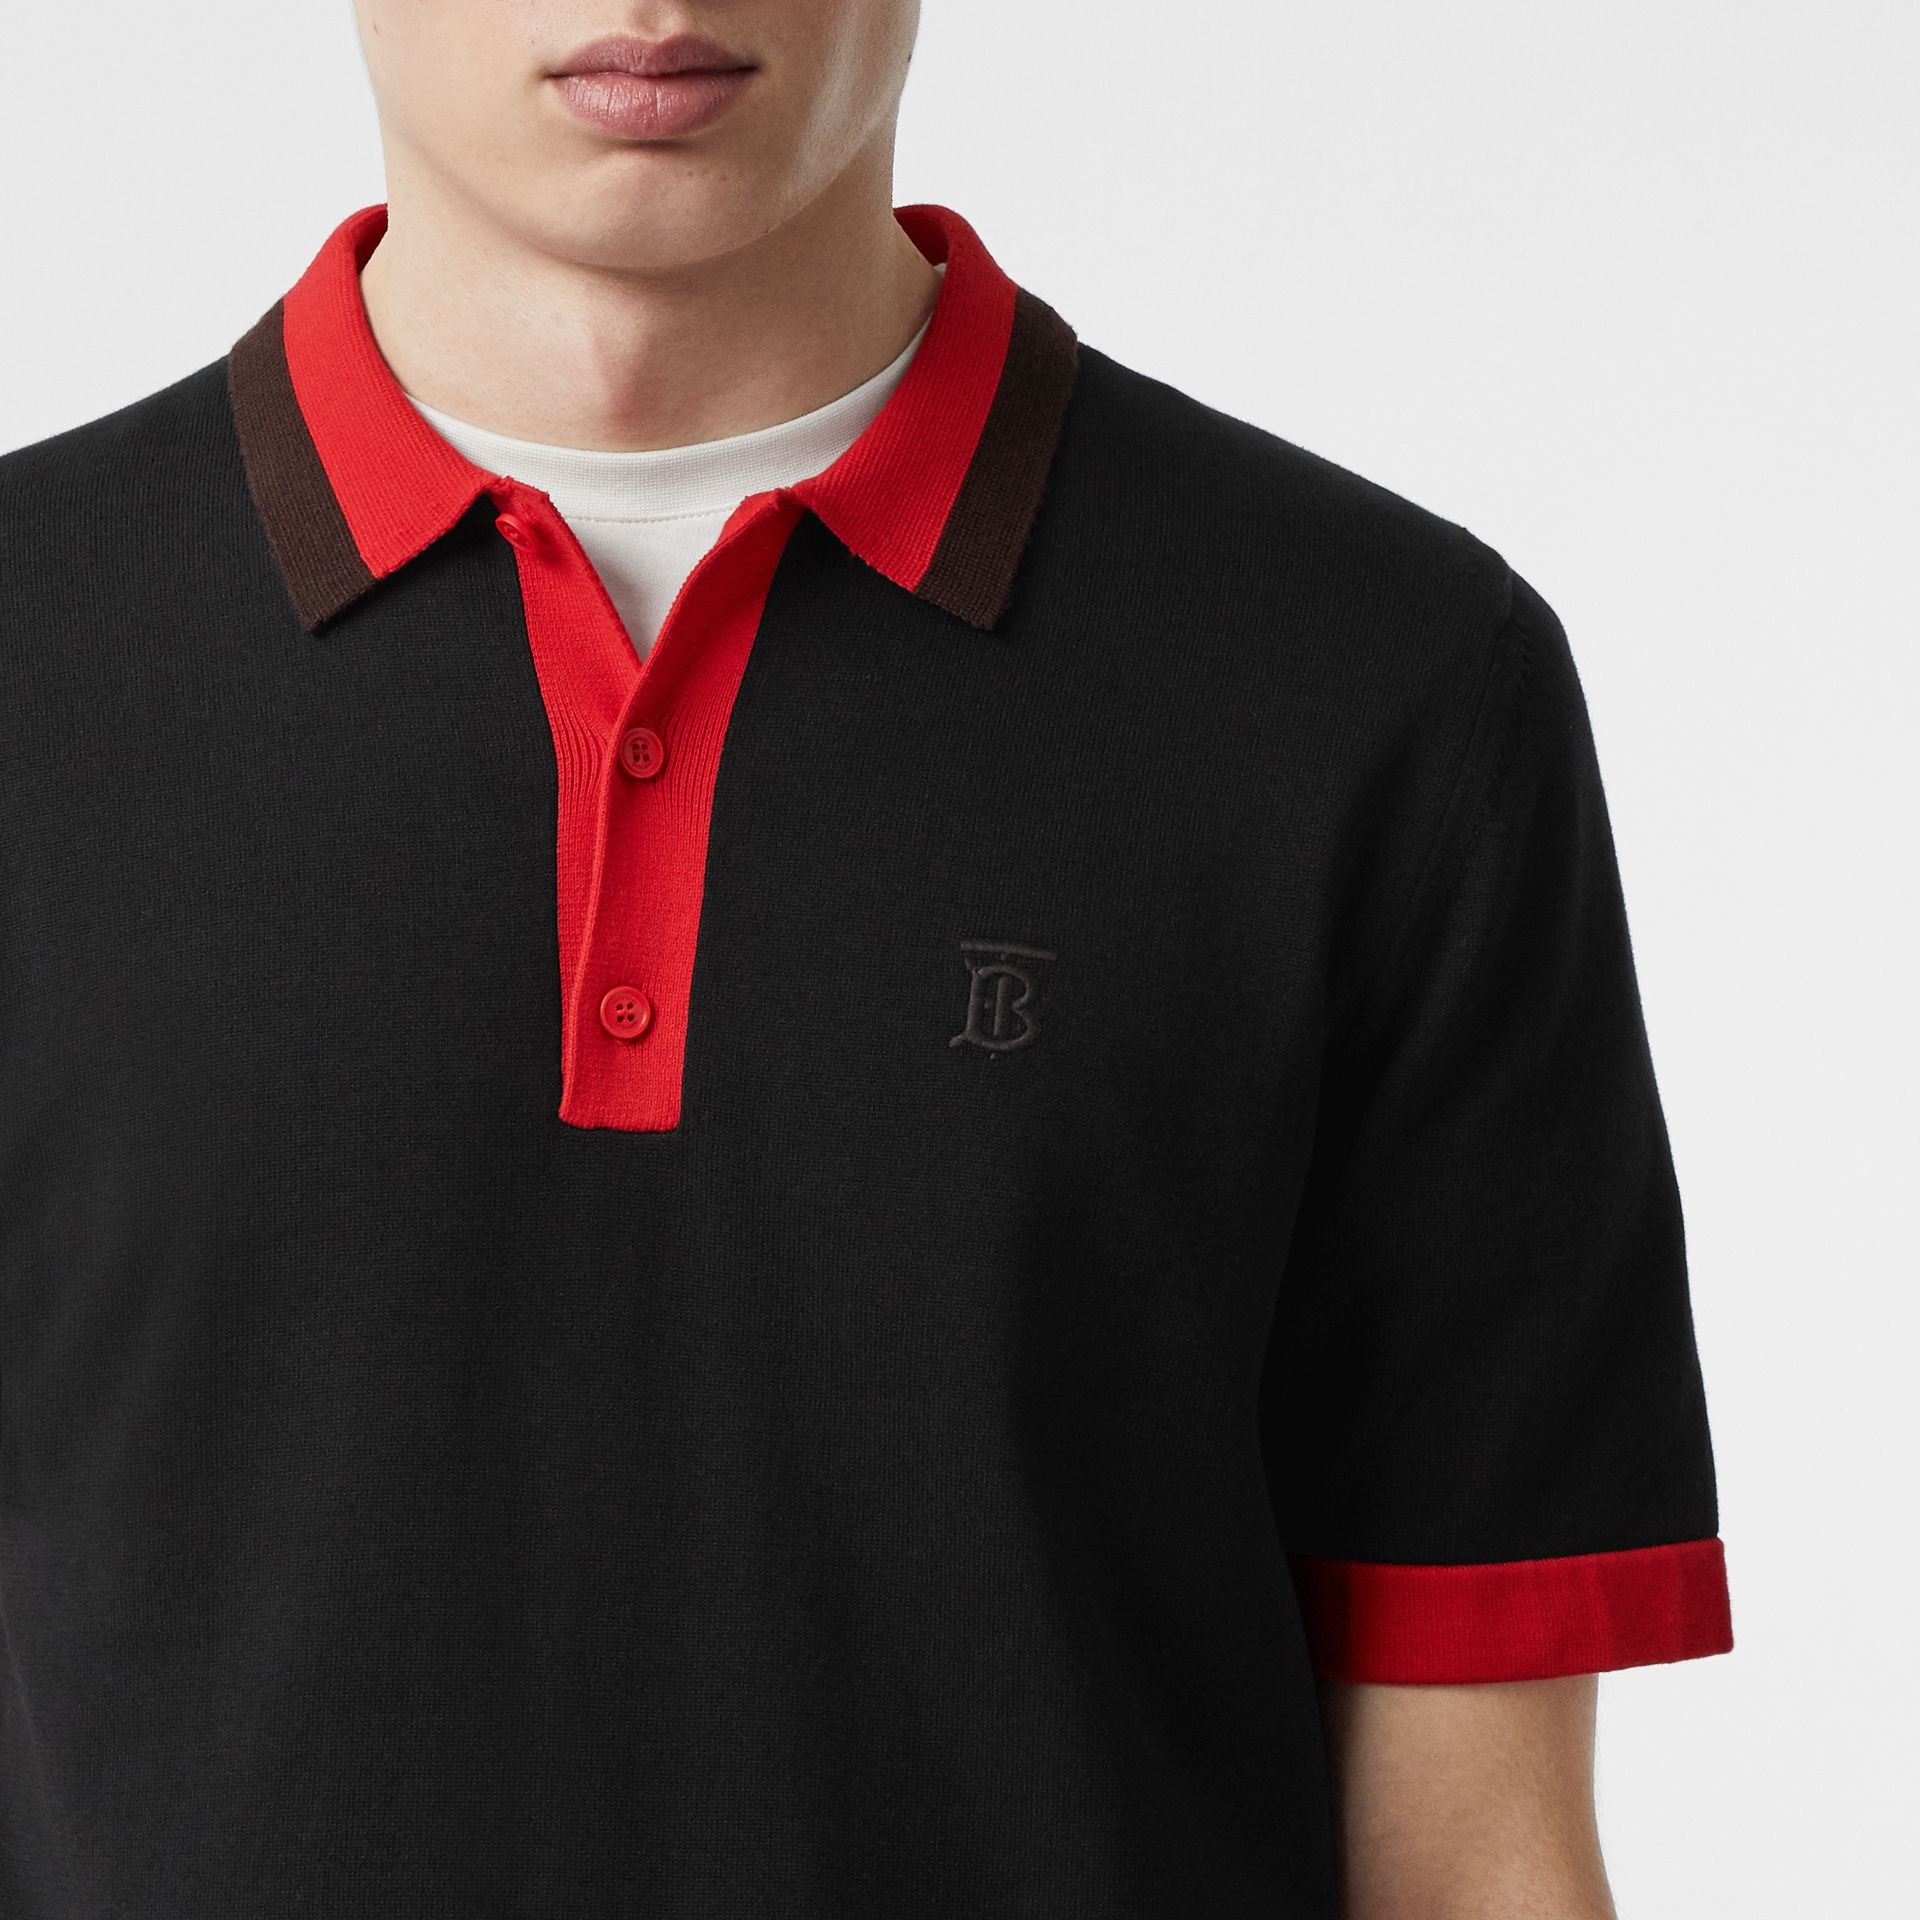 Monogram Motif Tipped Cotton Polo Shirt in Black - Men | Burberry - gallery image 1